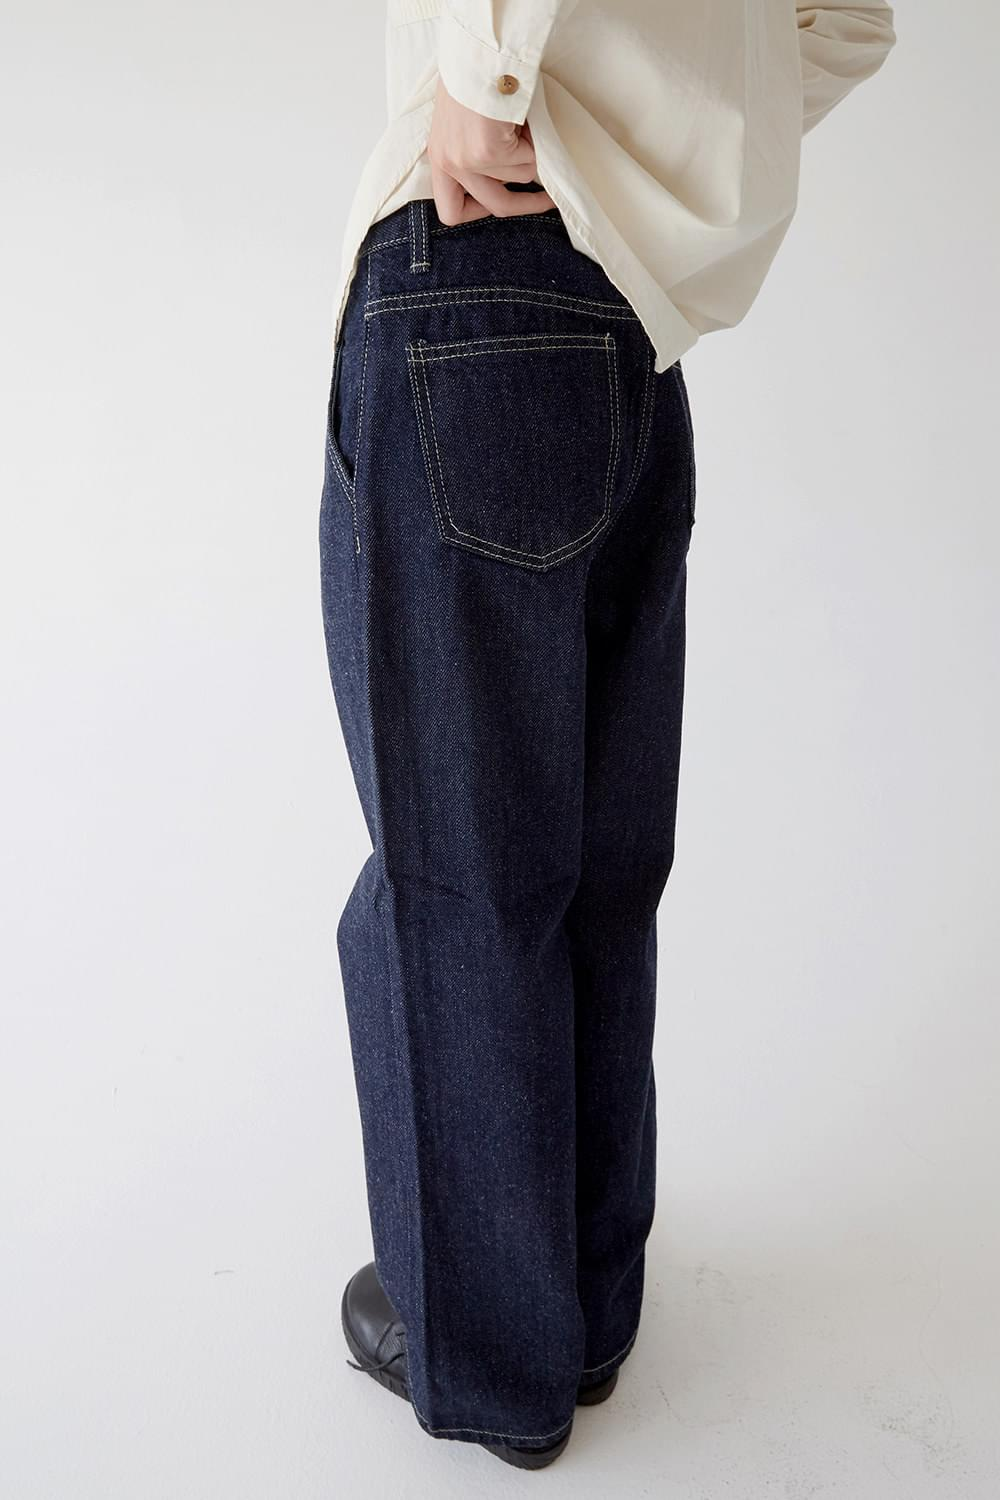 loose staright denim pants